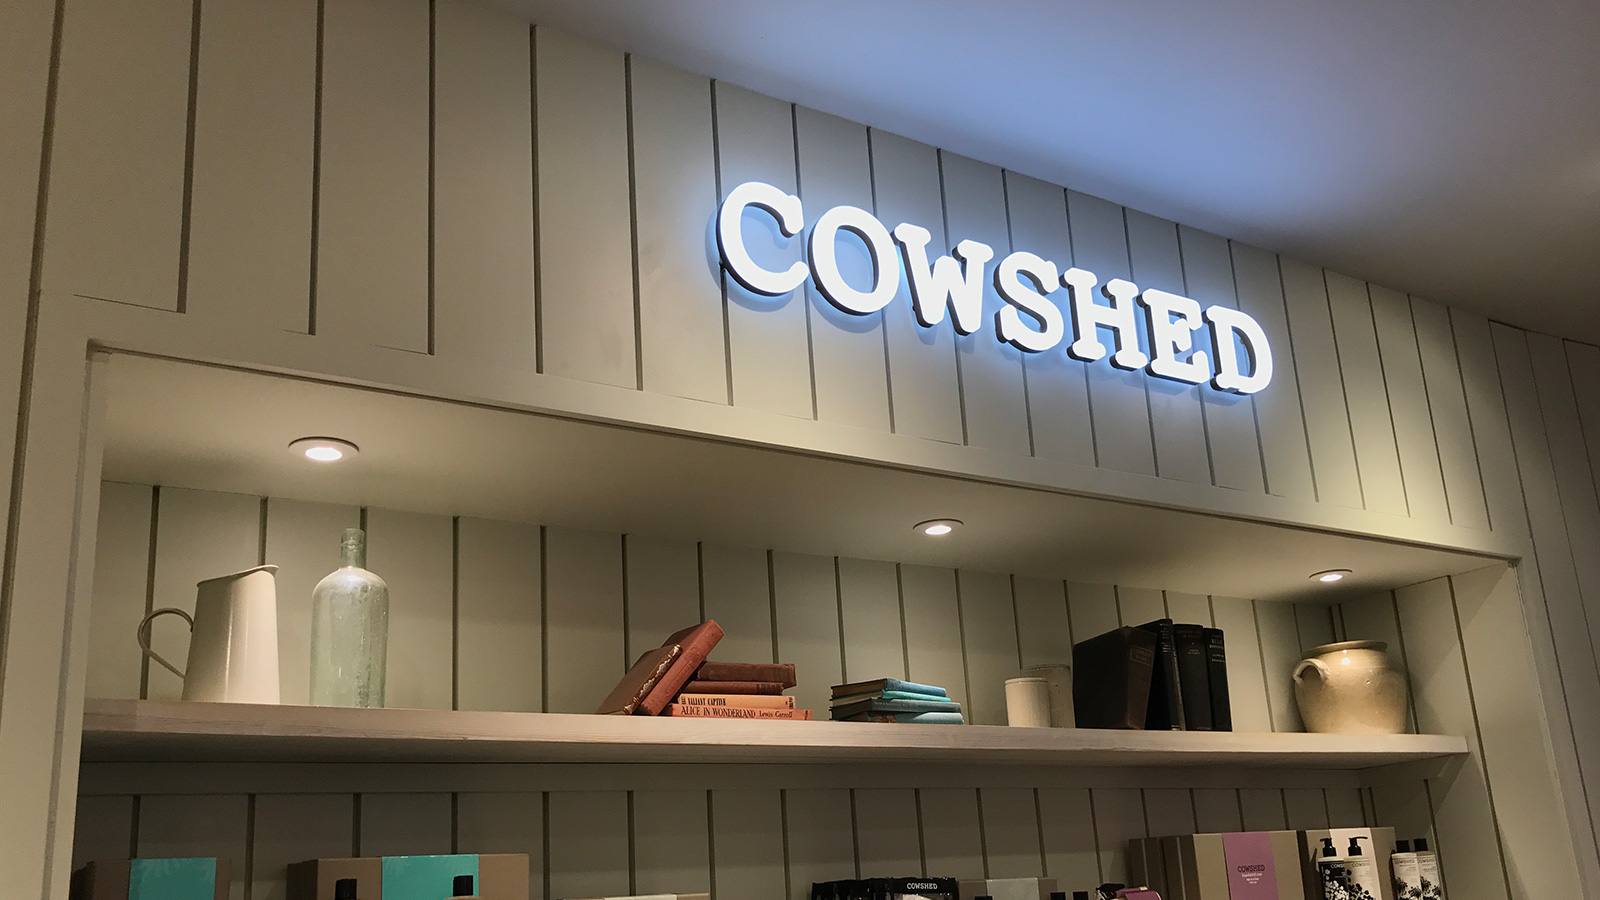 Ultra neon Cowshed logo blue